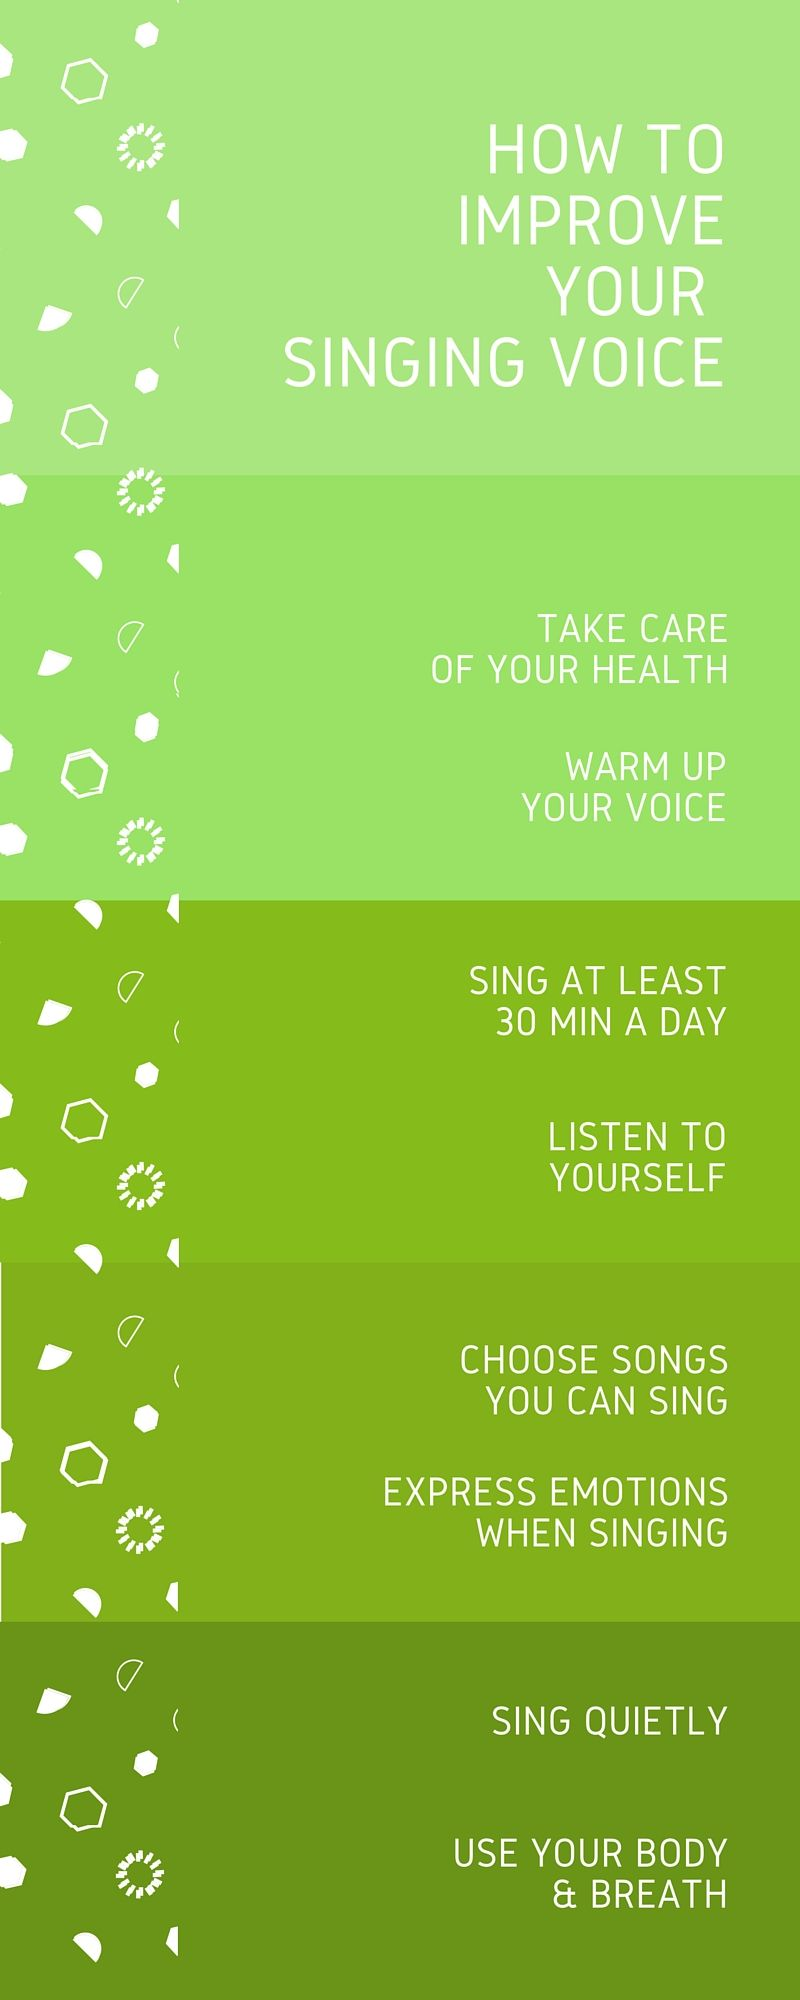 How To Improve Your Voice As A Singer? Here Are The Best 8 Steps To